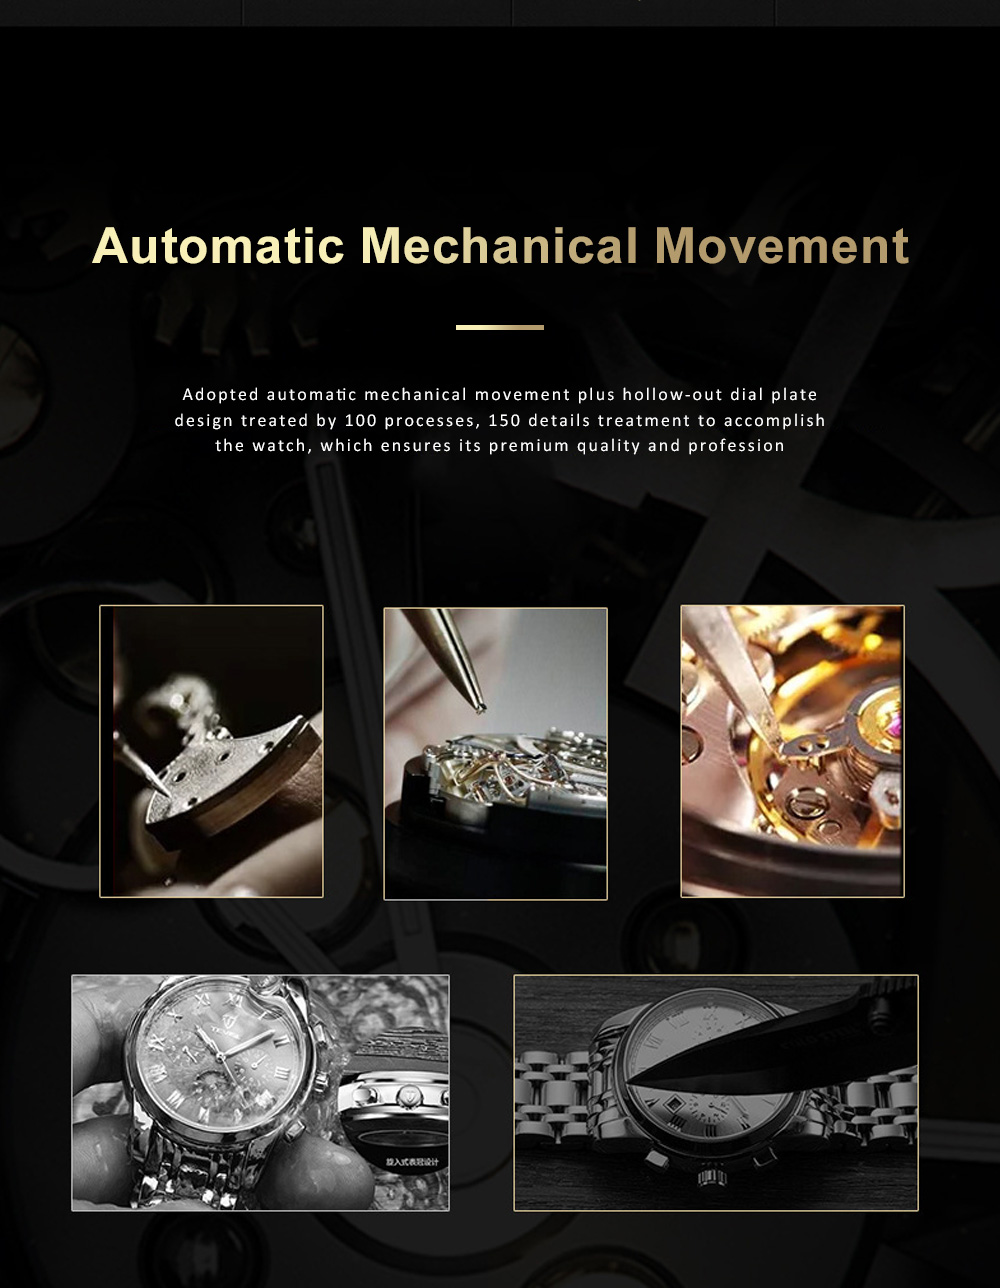 Automatic Mechanical Men's Watch for Business, Daily, Dating, Luxurious Fashion Businessman Watch with Waterproof 1